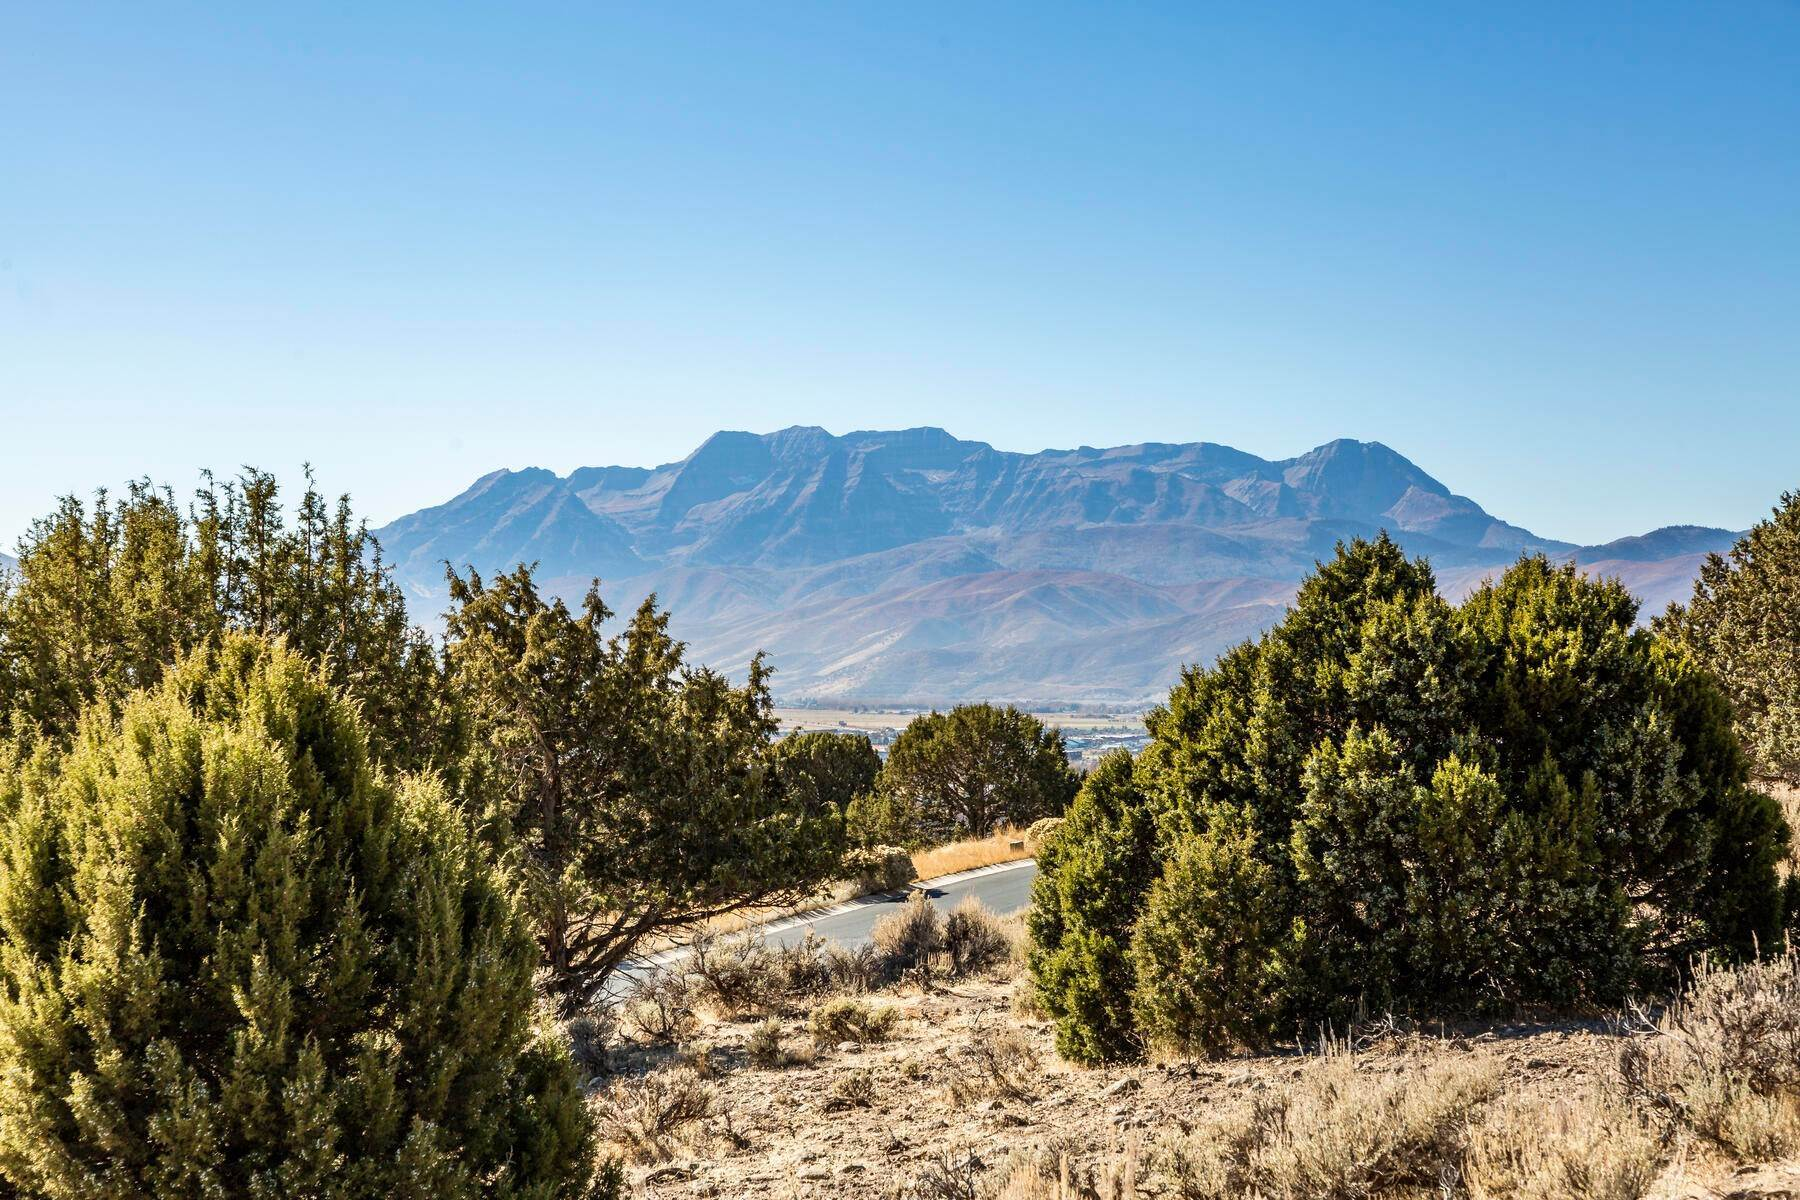 Property for Sale at Premier Custom Corner Homesite With Phenomenal Views In Exclusive Red Ledges 3205 E Horsehead Peak Court, Lot 171 Heber City, Utah 84032 United States